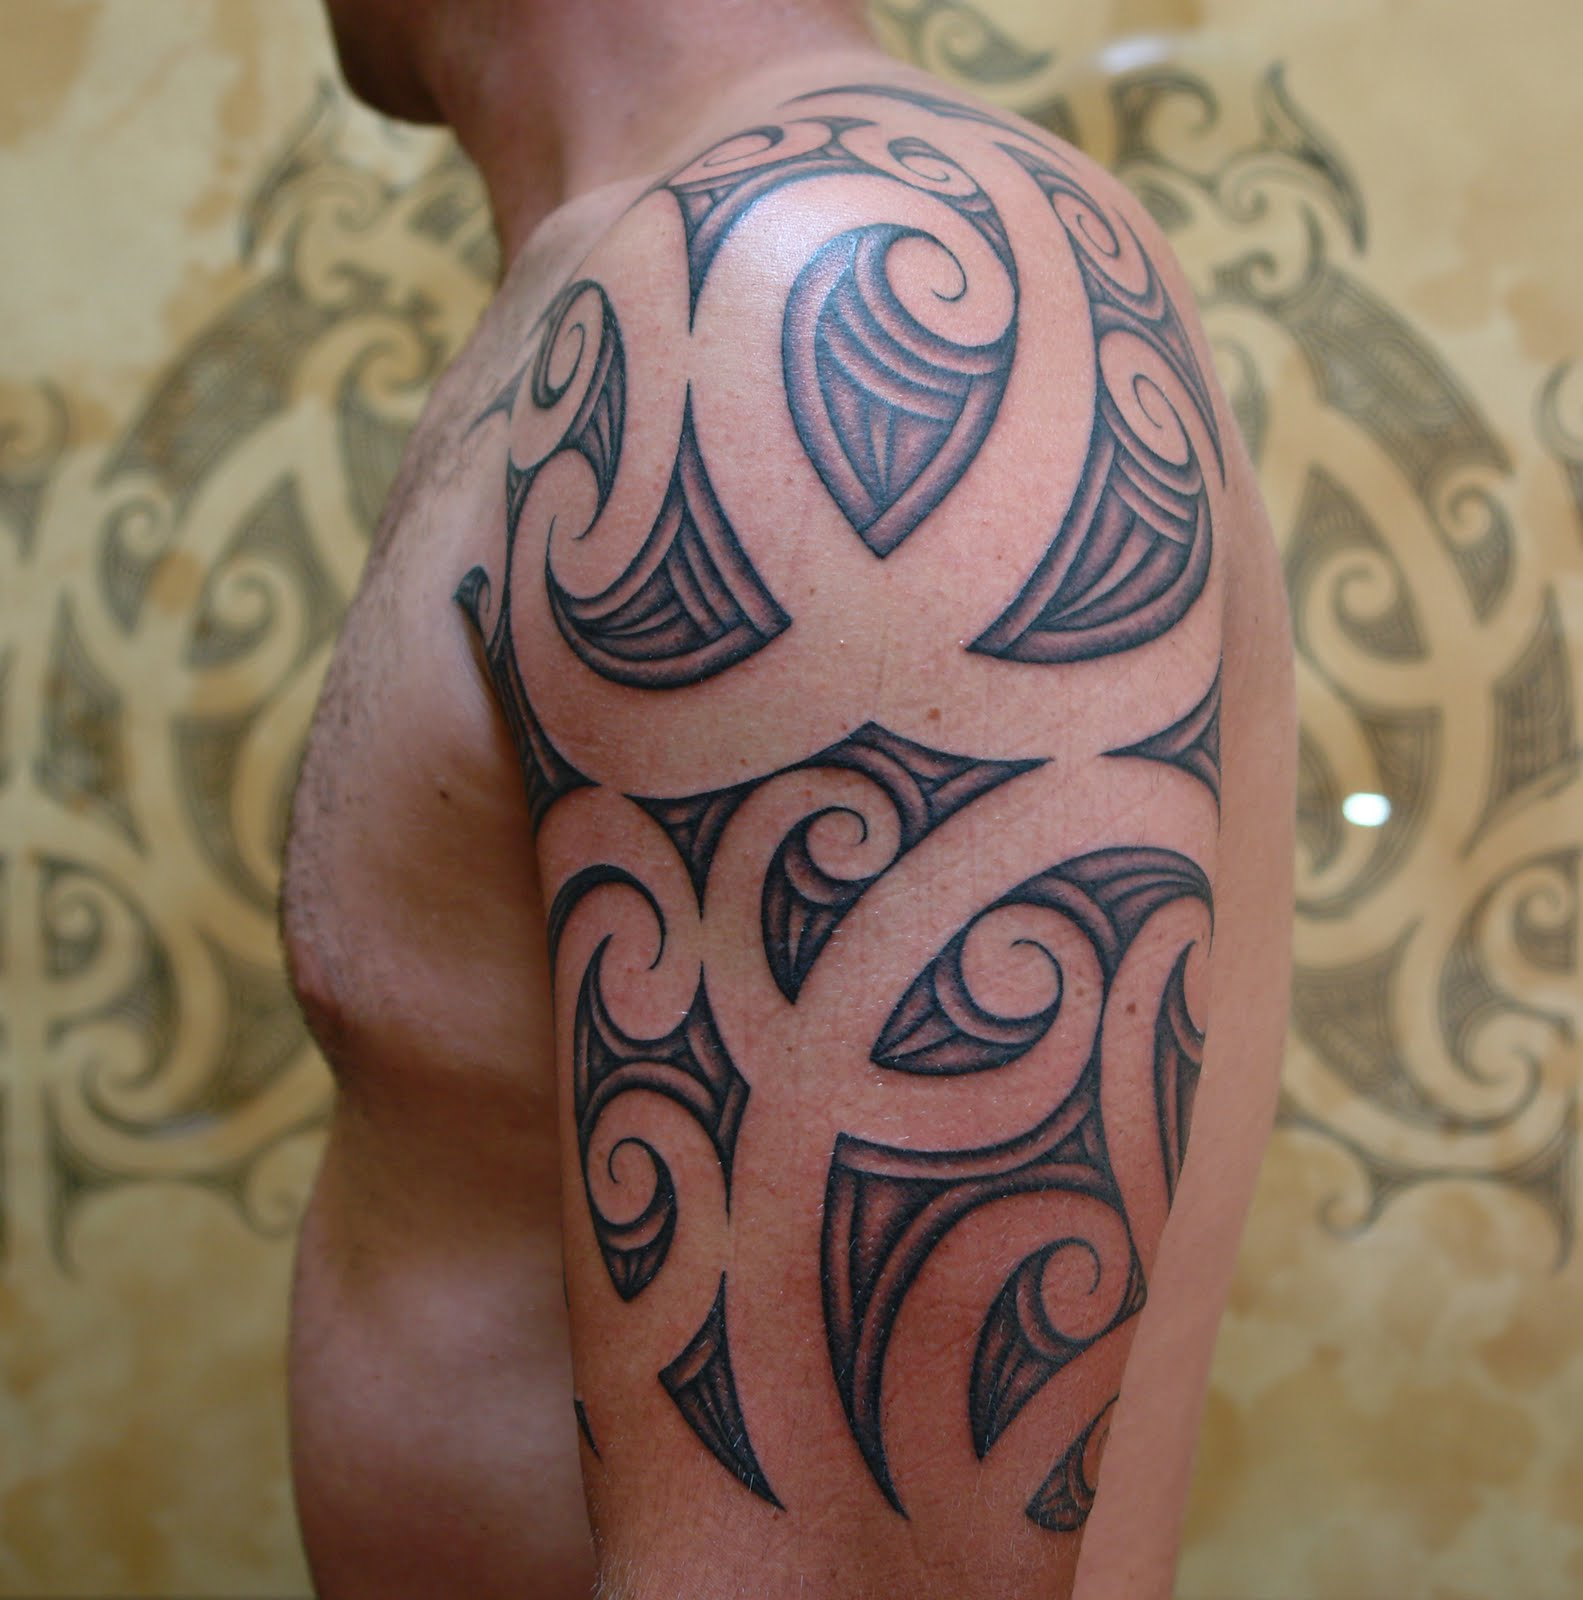 Body Art World Tattoos: Maori Tattoo Art And Traditional